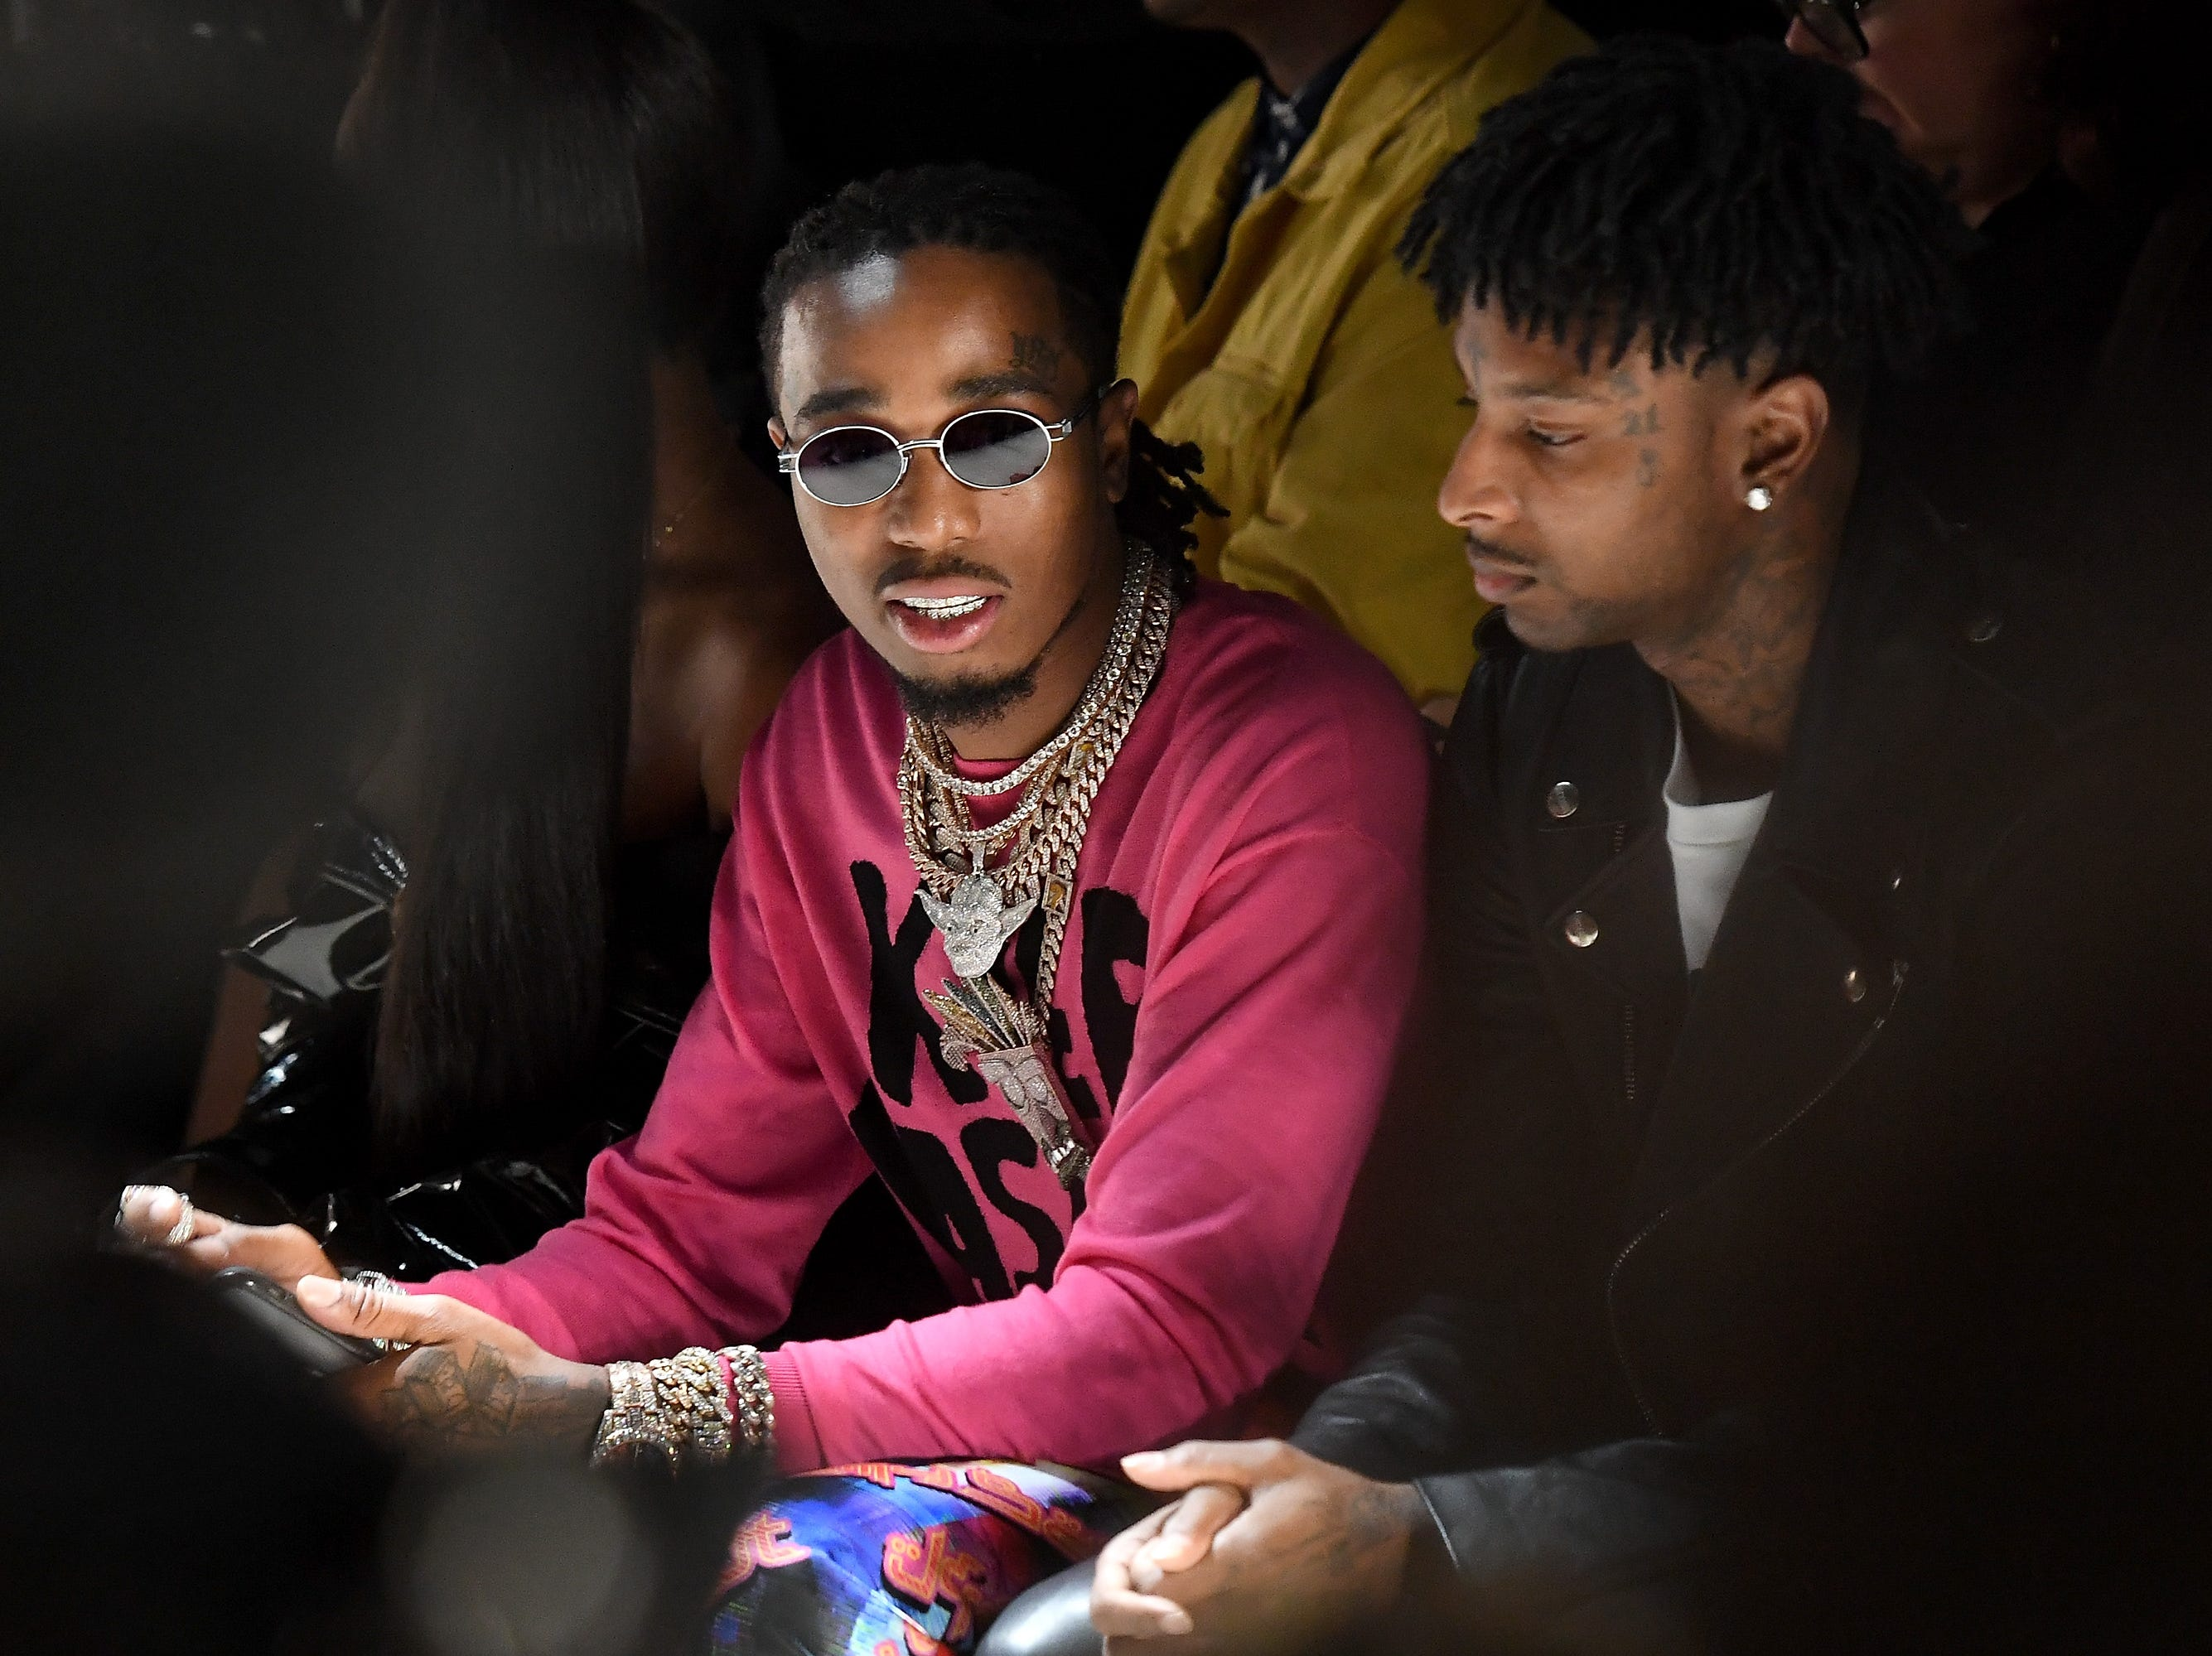 NEW YORK, NY - SEPTEMBER 06:  Quavo attends the Jeremy Scott front row during New York Fashion Week: The Shows at Gallery I at Spring Studios on September 6, 2018 in New York City.  (Photo by Nicholas Hunt/Getty Images for NYFW: The Shows) ORG XMIT: 775215639 ORIG FILE ID: 1028019882